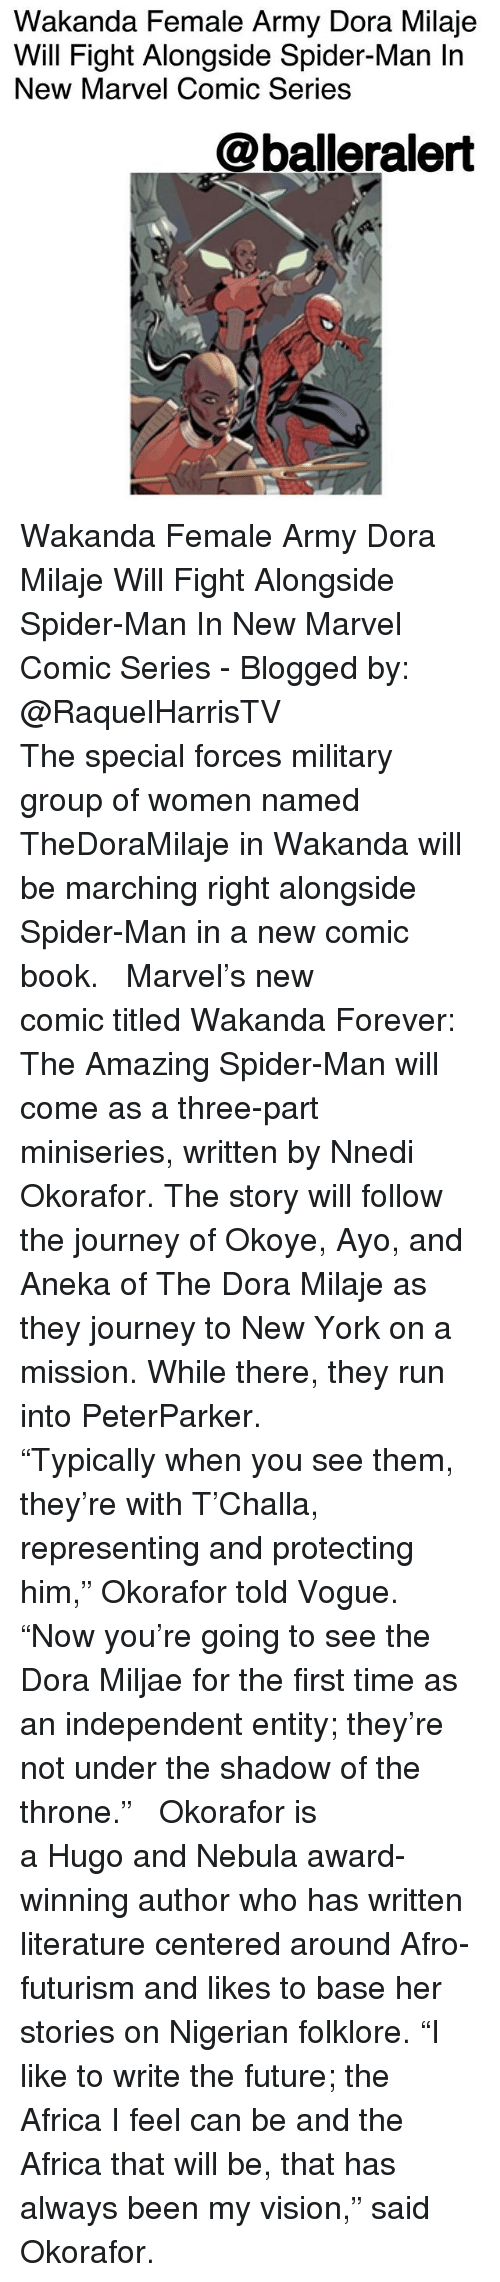 """Africa, Future, and Journey: Wakanda Female Army Dora Milaje  Will Fight Alongside Spider-Man In  New Marvel Comic Series  @balleralert Wakanda Female Army Dora Milaje Will Fight Alongside Spider-Man In New Marvel Comic Series - Blogged by: @RaquelHarrisTV ⠀⠀⠀⠀⠀⠀⠀⠀⠀ ⠀⠀⠀⠀⠀⠀⠀⠀⠀ The special forces military group of women named TheDoraMilaje in Wakanda will be marching right alongside Spider-Man in a new comic book. ⠀⠀⠀⠀⠀⠀⠀⠀⠀ ⠀⠀⠀⠀⠀⠀⠀⠀⠀ Marvel's new comic titled Wakanda Forever: The Amazing Spider-Man will come as a three-part miniseries, written by Nnedi Okorafor. The story will follow the journey of Okoye, Ayo, and Aneka of The Dora Milaje as they journey to New York on a mission. While there, they run into PeterParker. ⠀⠀⠀⠀⠀⠀⠀⠀⠀ ⠀⠀⠀⠀⠀⠀⠀⠀⠀ """"Typically when you see them, they're with T'Challa, representing and protecting him,"""" Okorafor told Vogue. """"Now you're going to see the Dora Miljae for the first time as an independent entity; they're not under the shadow of the throne."""" ⠀⠀⠀⠀⠀⠀⠀⠀⠀ ⠀⠀⠀⠀⠀⠀⠀⠀⠀ Okorafor is a Hugo and Nebula award-winning author who has written literature centered around Afro-futurism and likes to base her stories on Nigerian folklore. """"I like to write the future; the Africa I feel can be and the Africa that will be, that has always been my vision,"""" said Okorafor."""